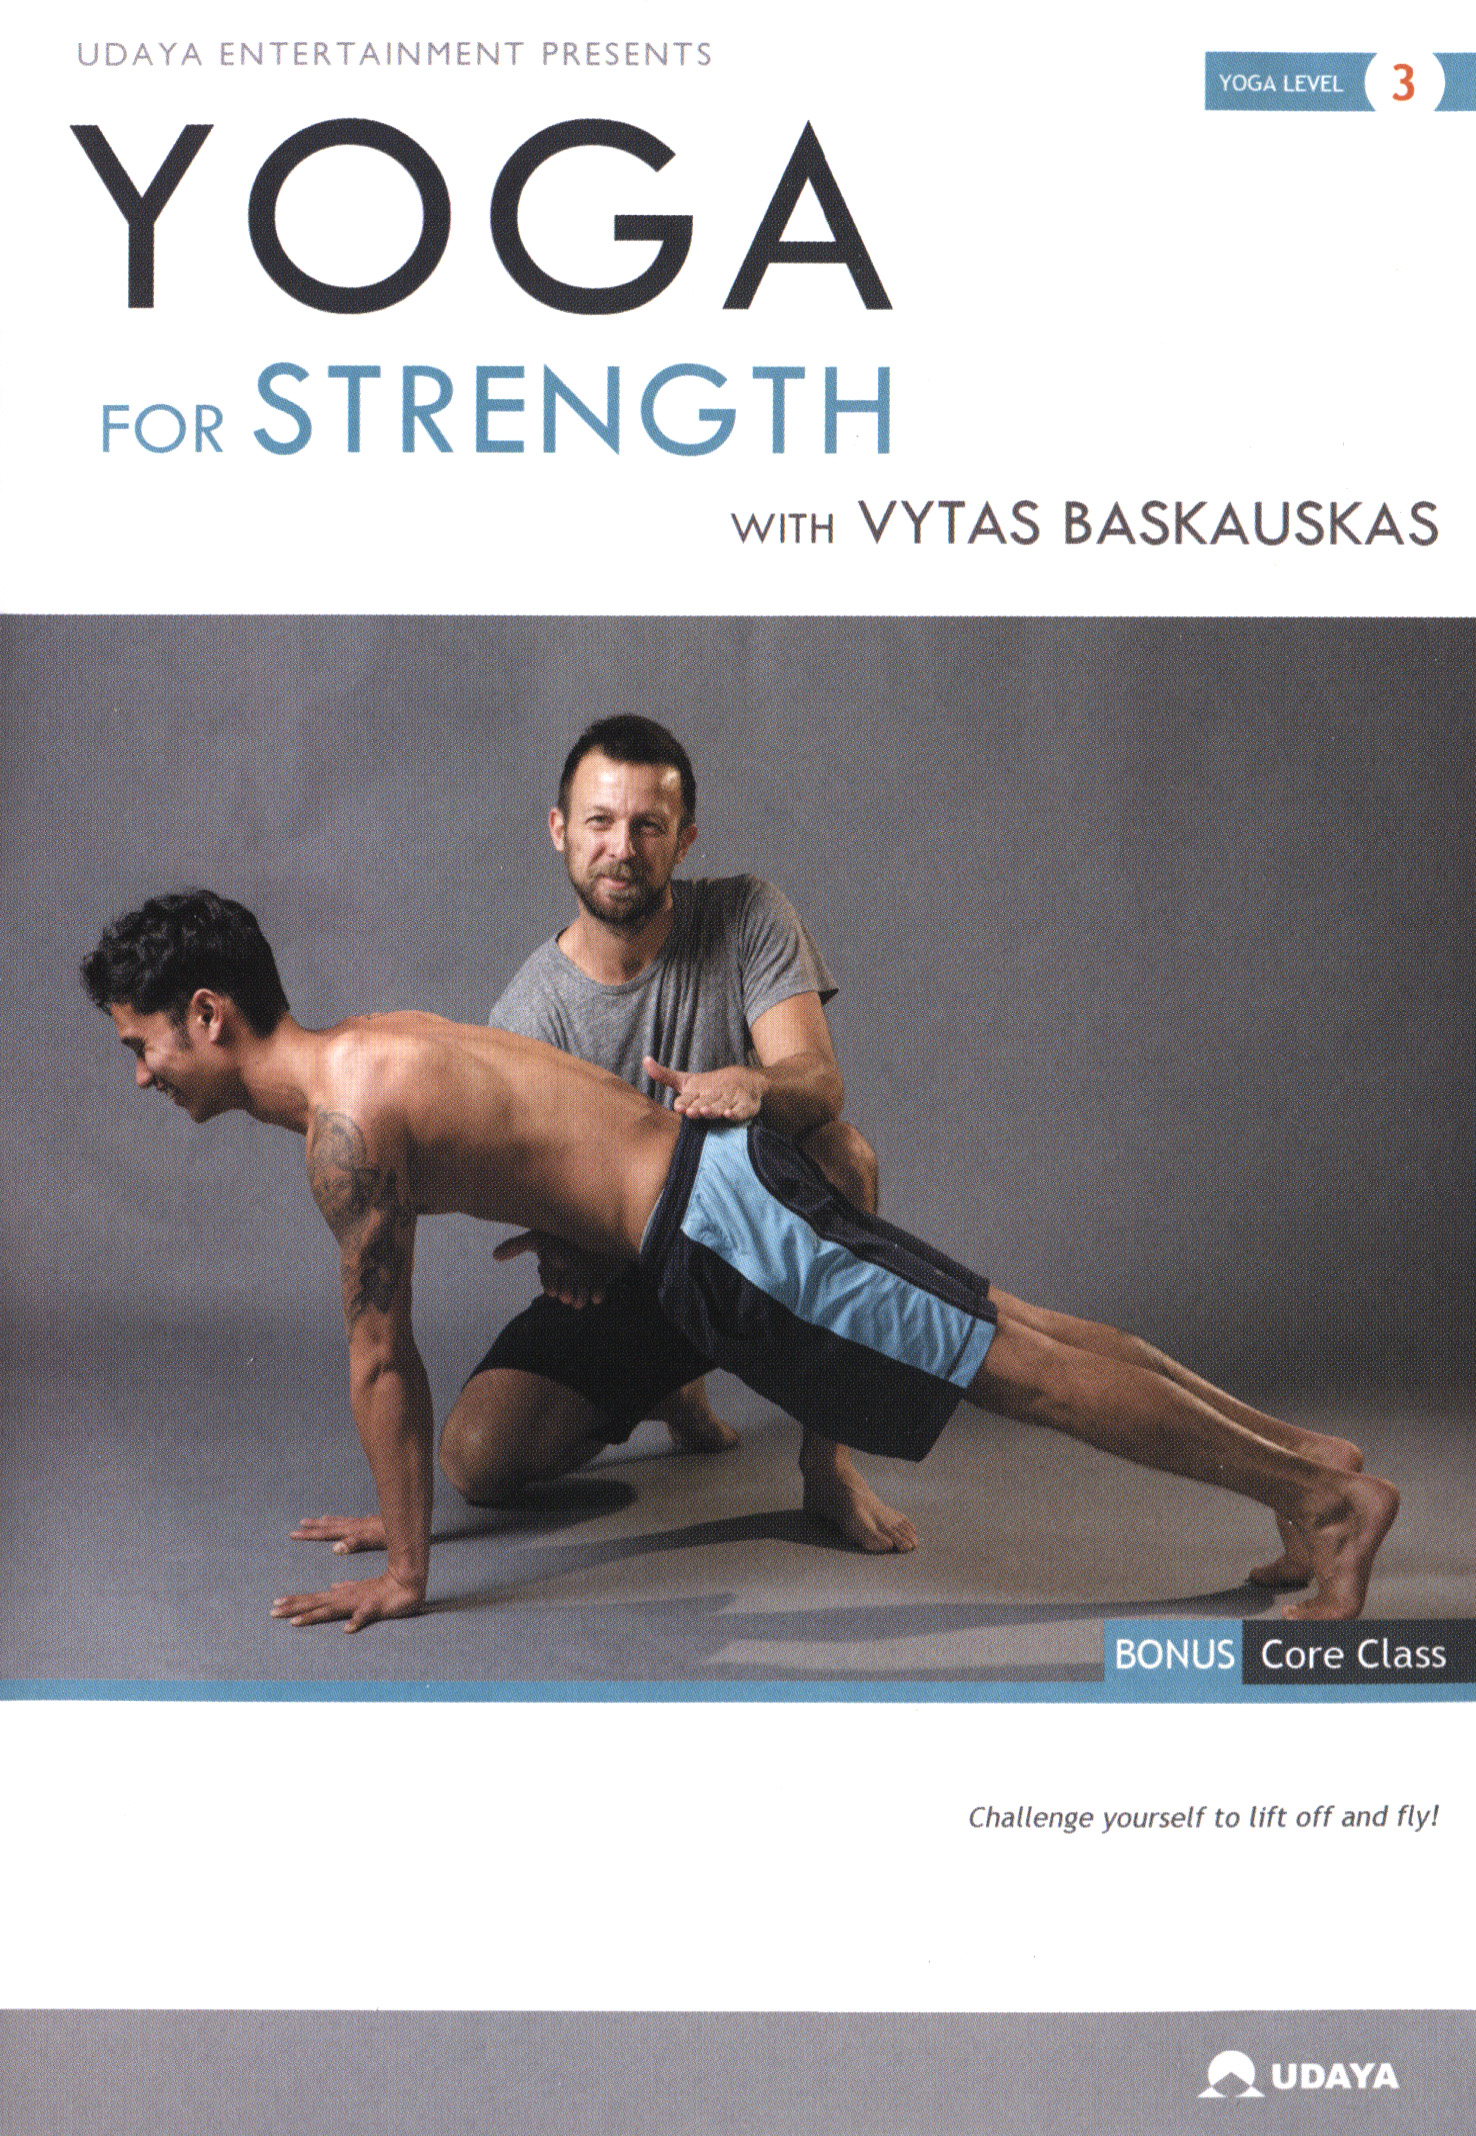 Yoga for Strength with Vytas Baskauskas